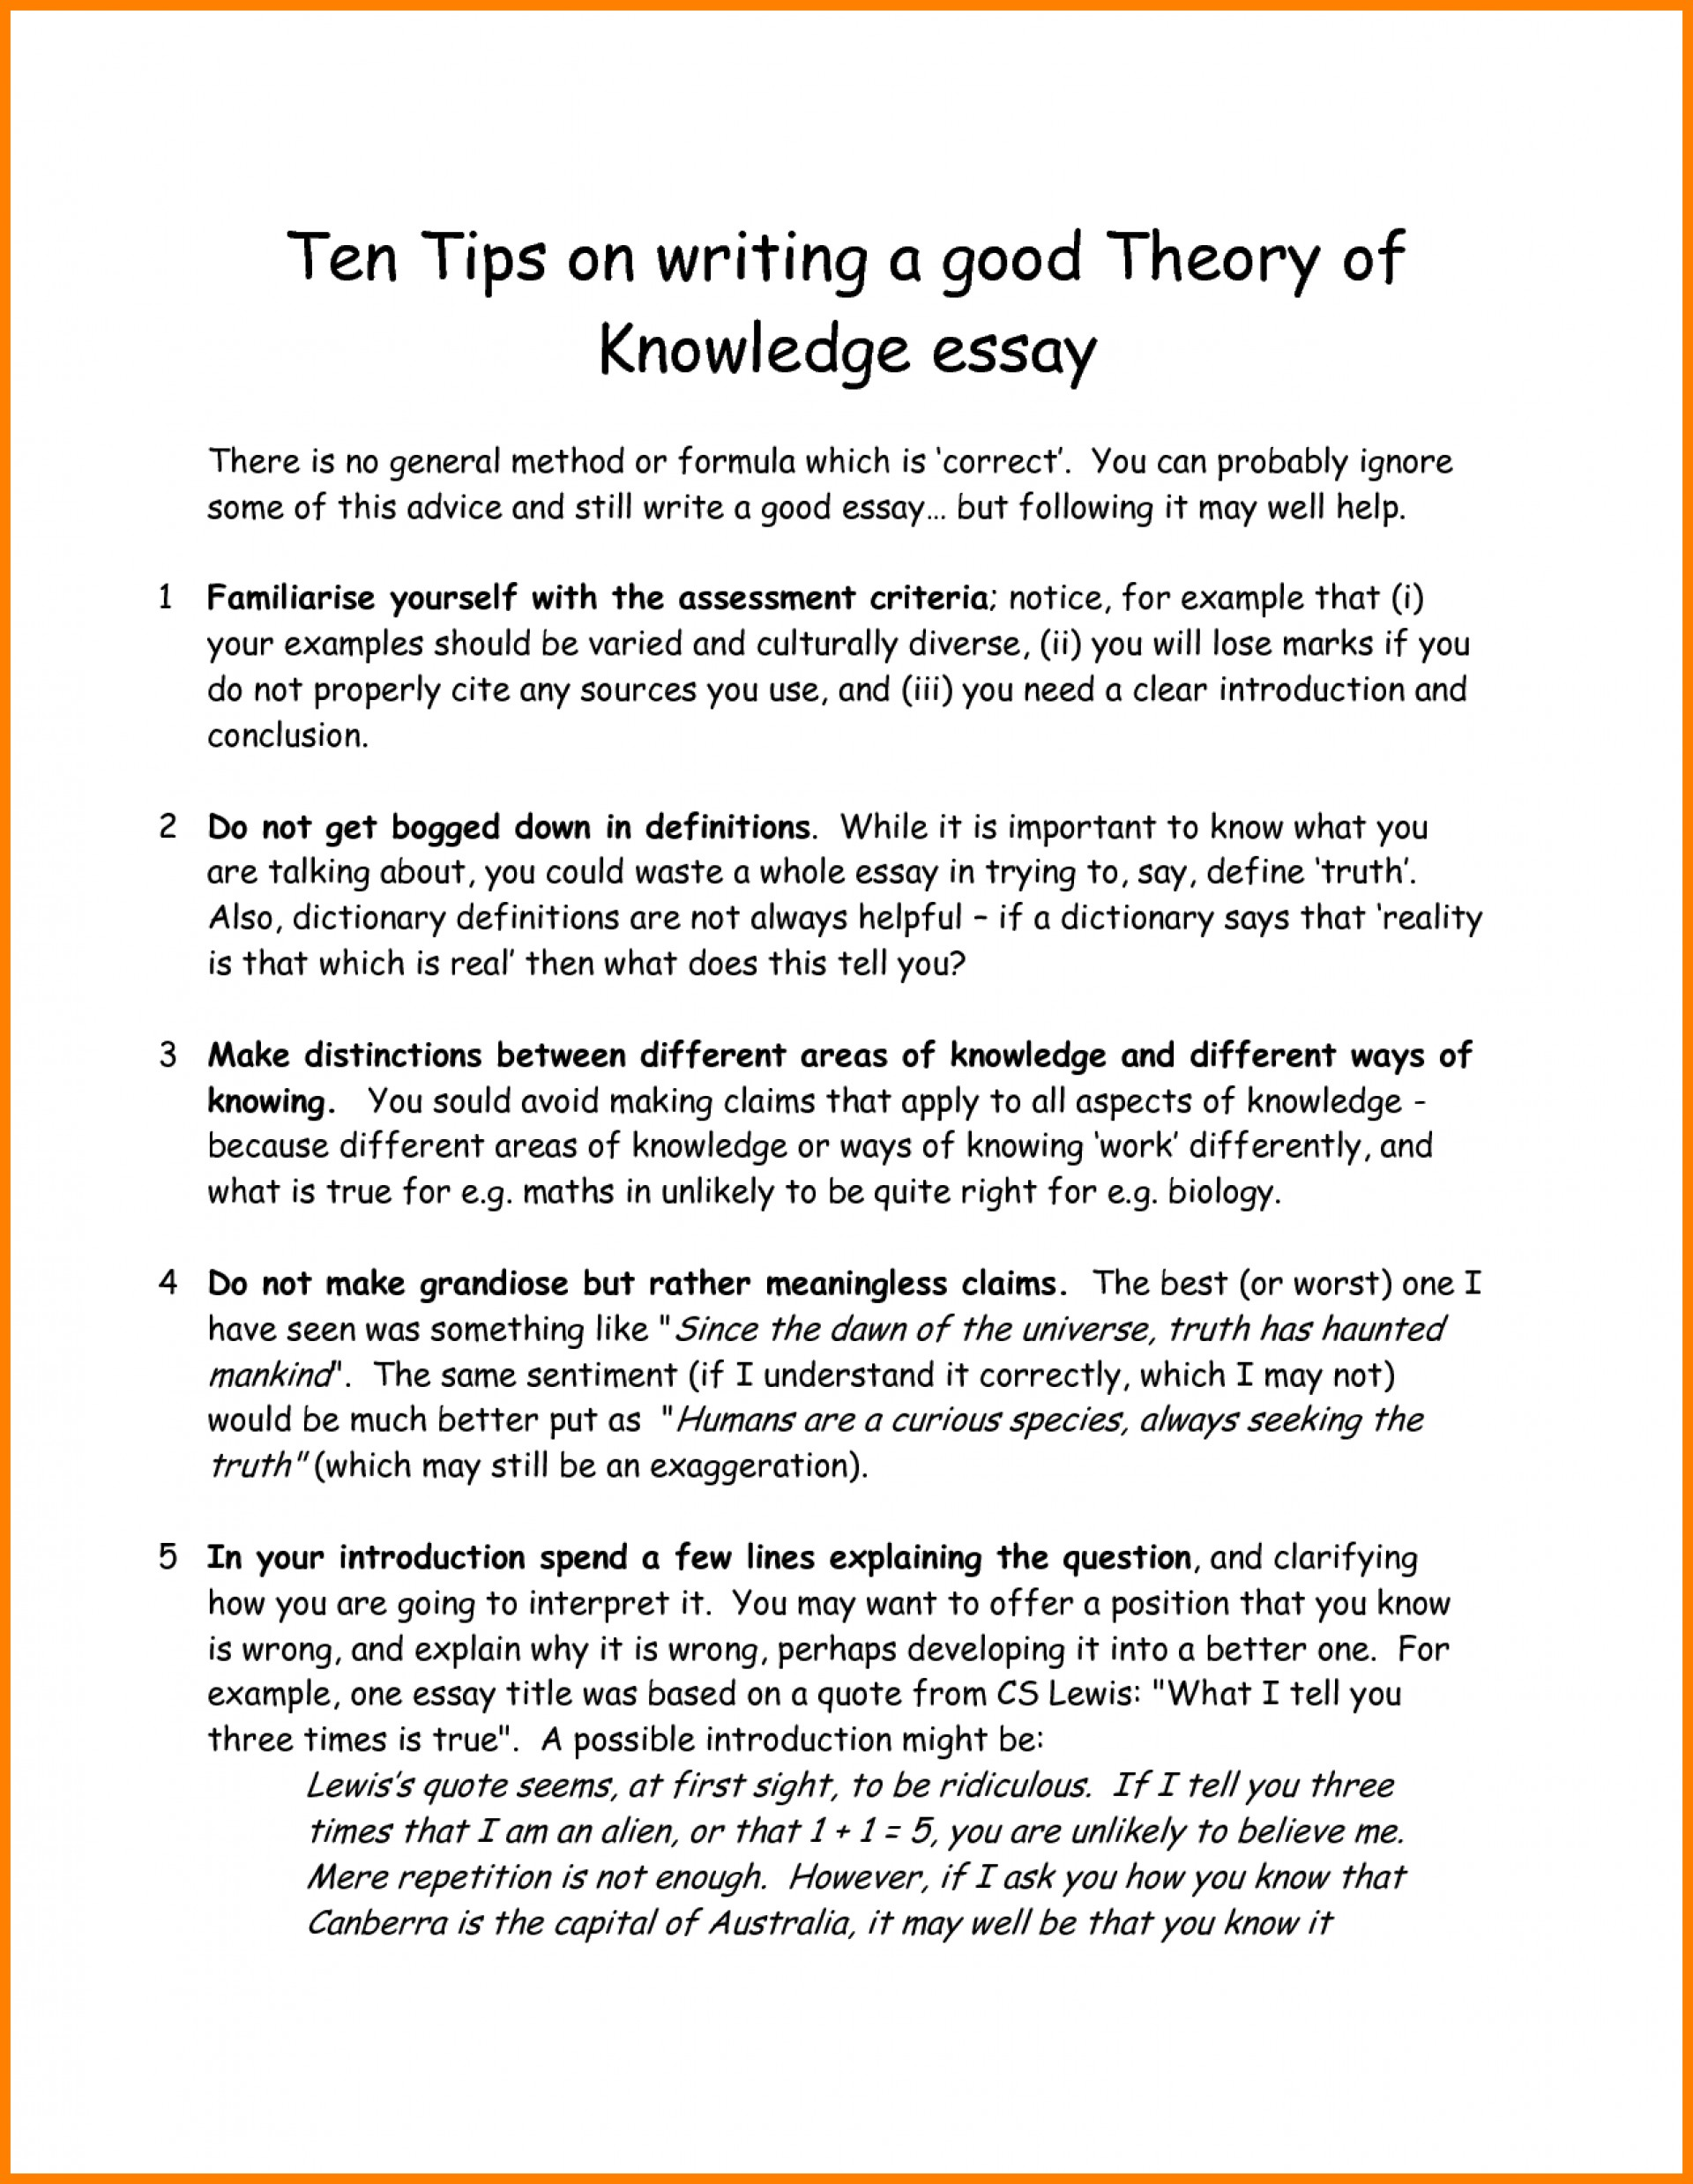 007 How To Start An Essay Examples Good Ways English The Paragraph Observation Off About Yourself Ledger Pa Informative Writing Analysis Conclusion Academic Top Introduction 1920